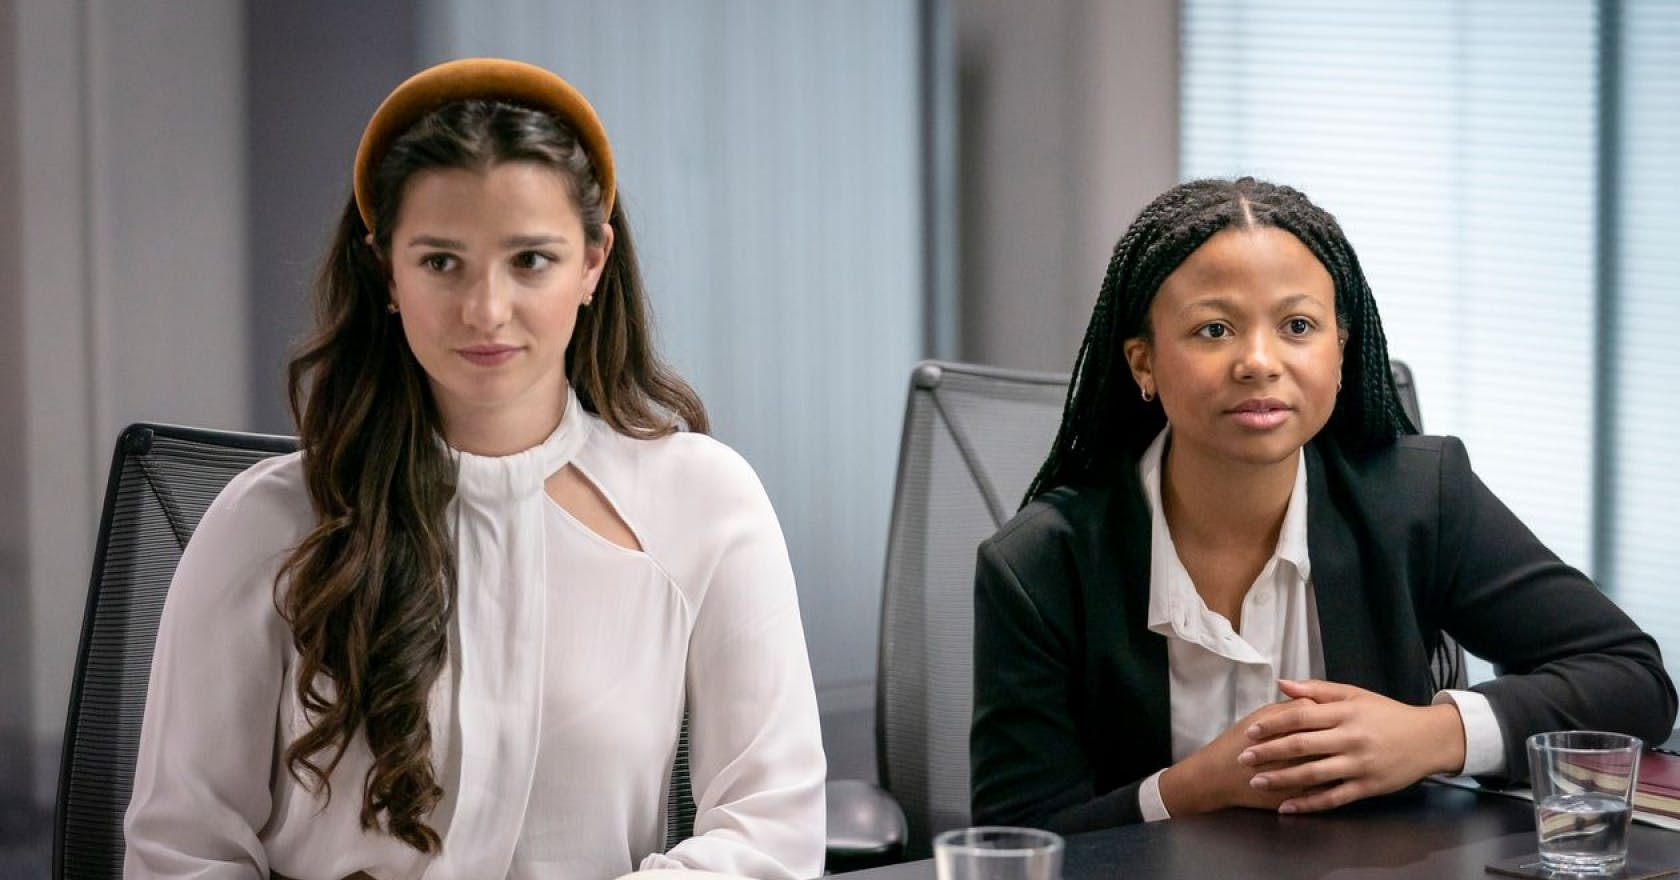 Industry episode 3 recap: can two competitive colleagues really also be flatmates?